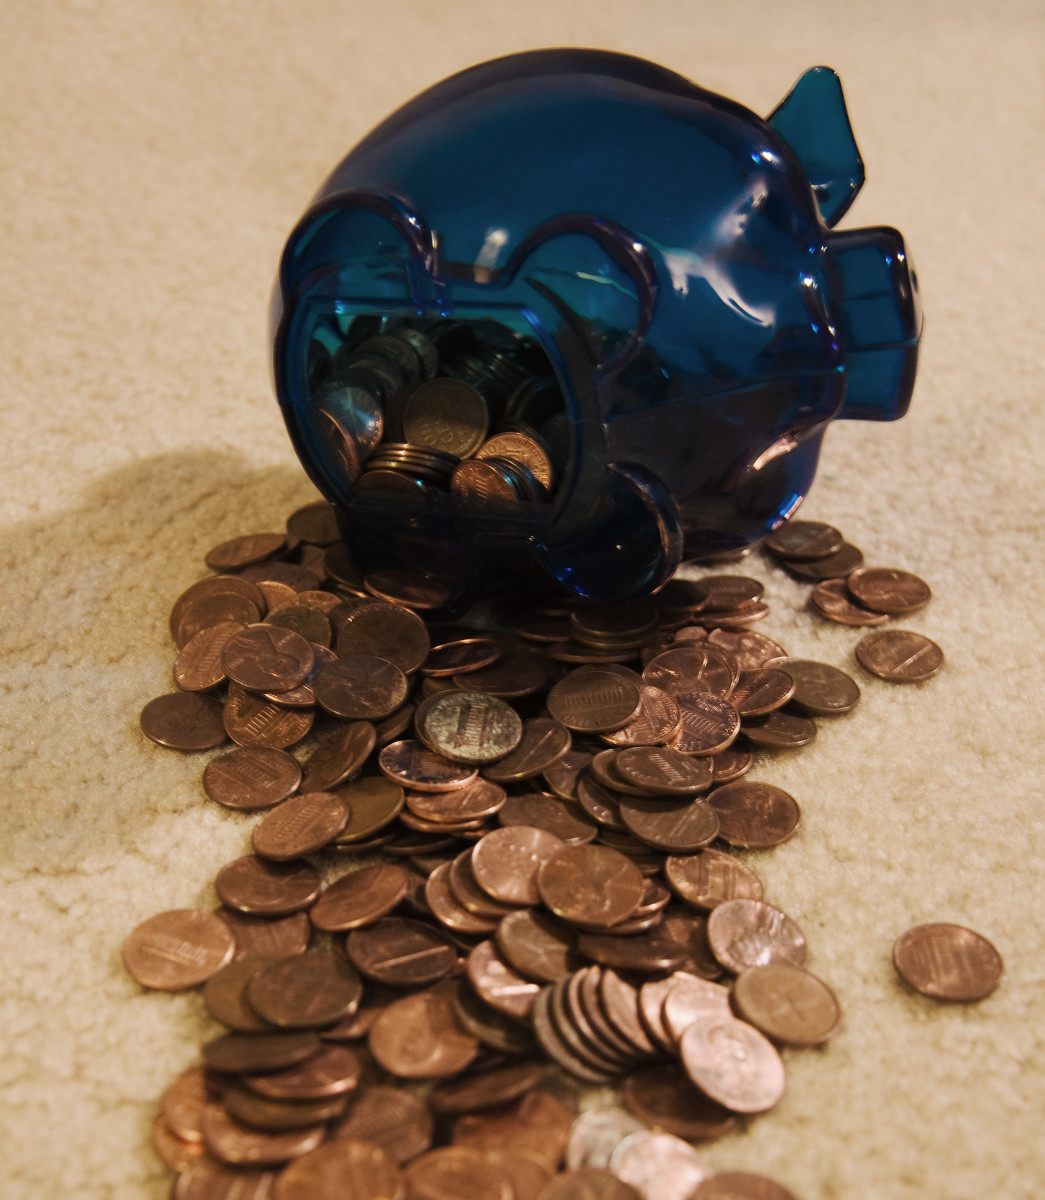 Break out the piggy bank!